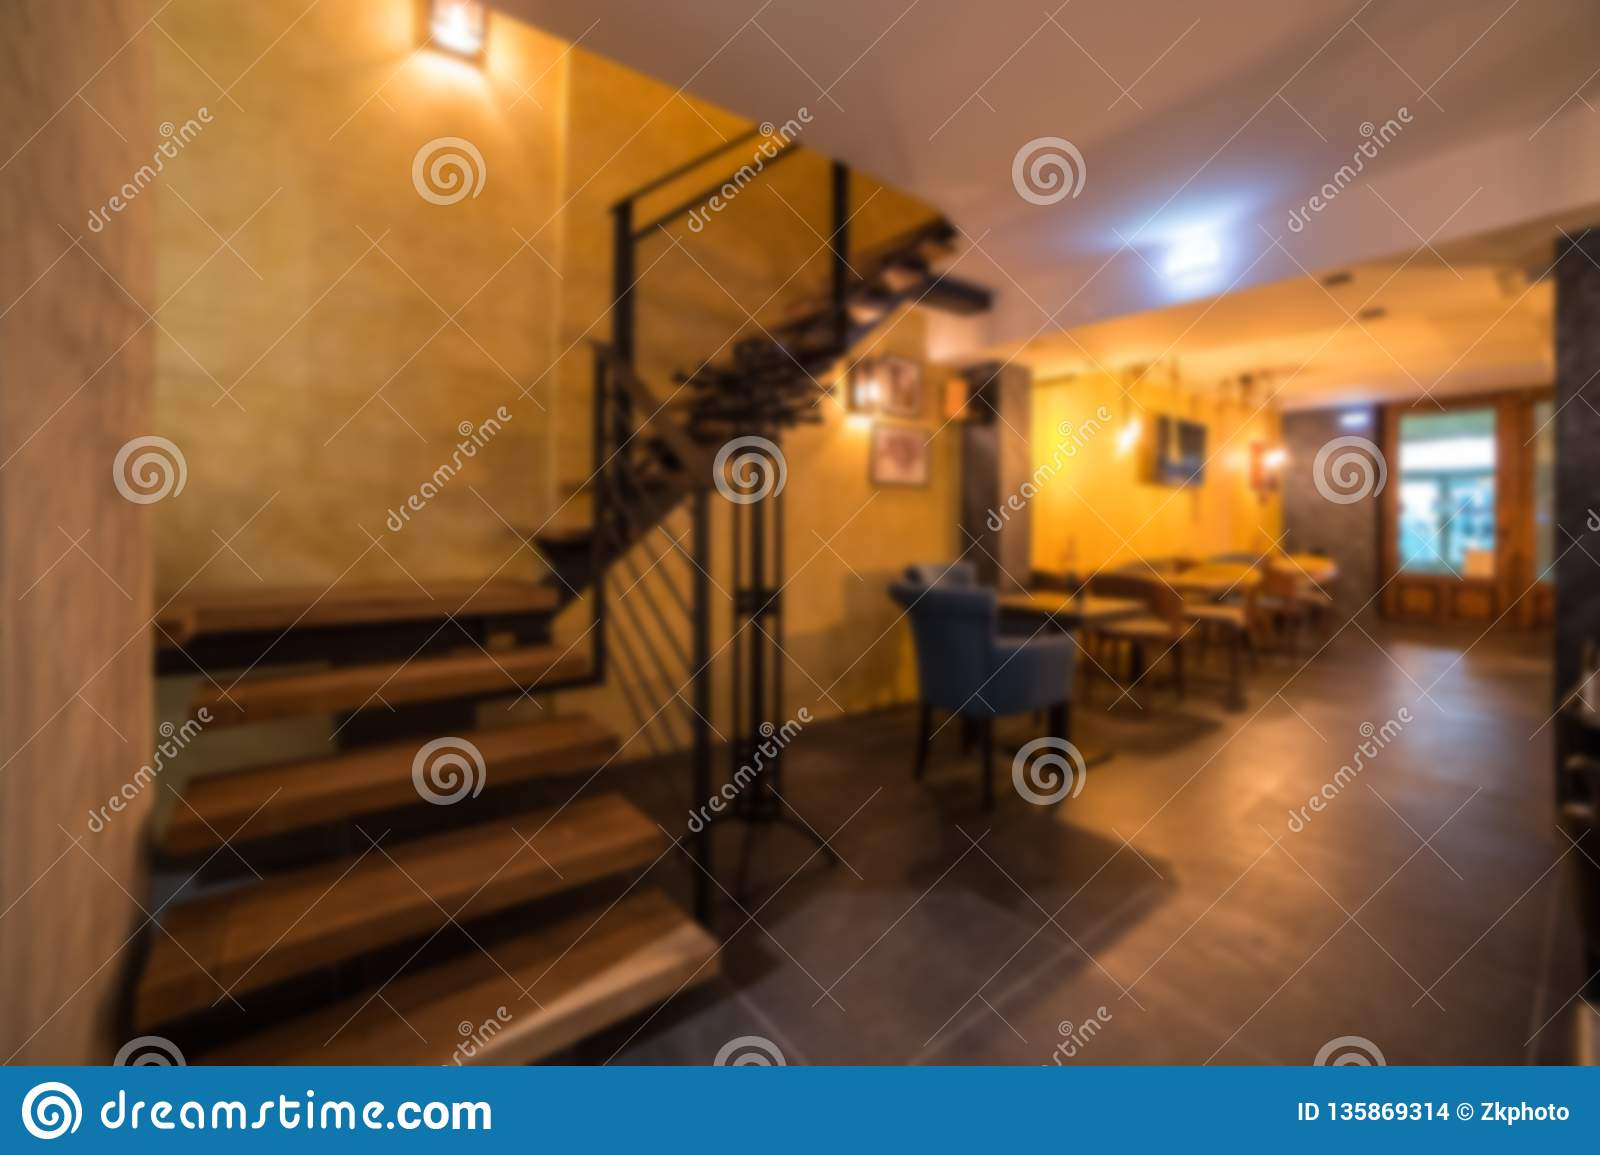 Blurred Modern Coffee Shop For Use As Background Cafe Restaurant Interior Stock Photo Image Of Display Desk 135869314